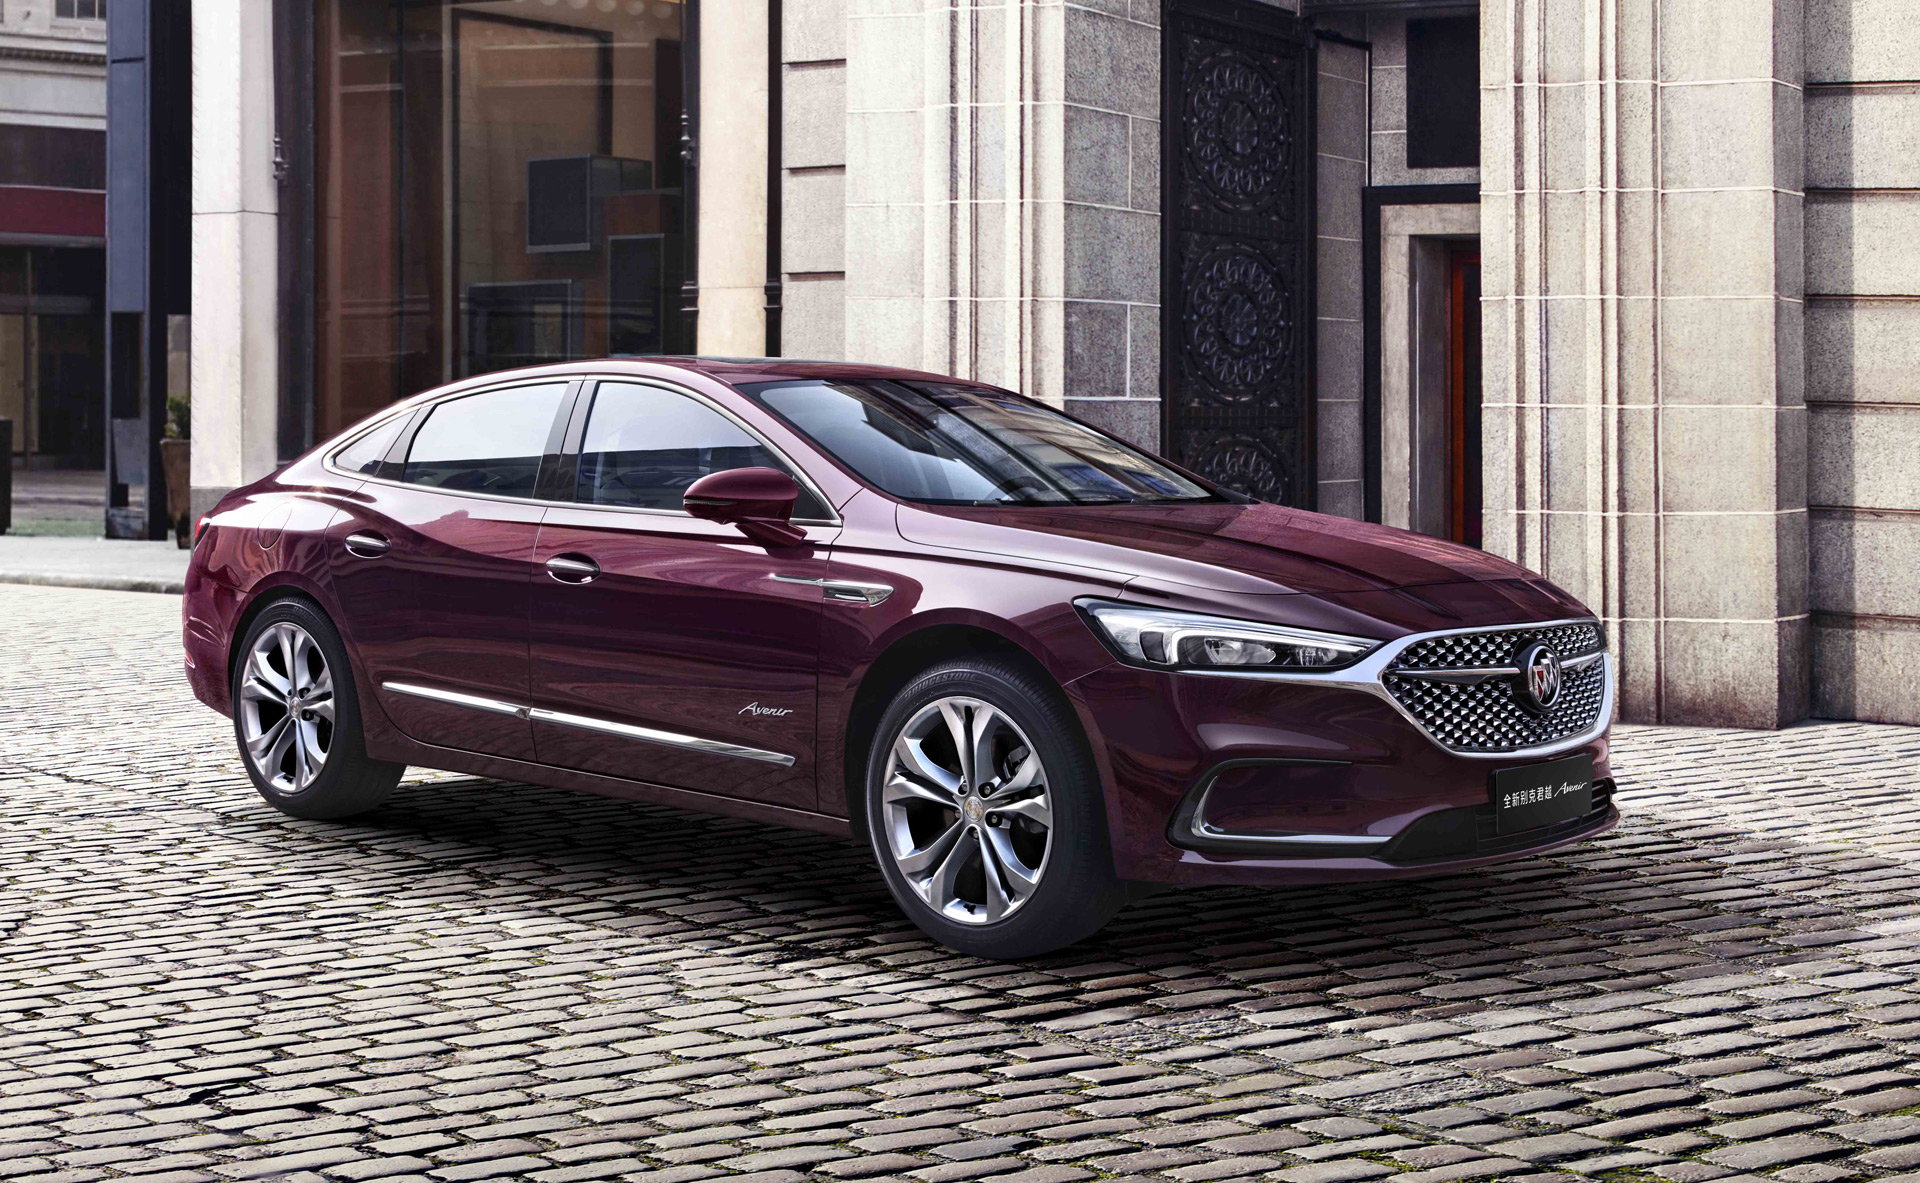 2020 Buick Lacrosse Made Handsome Just As It's Dropped In Us When Will The 2021 Buick Lacrosse Be Released